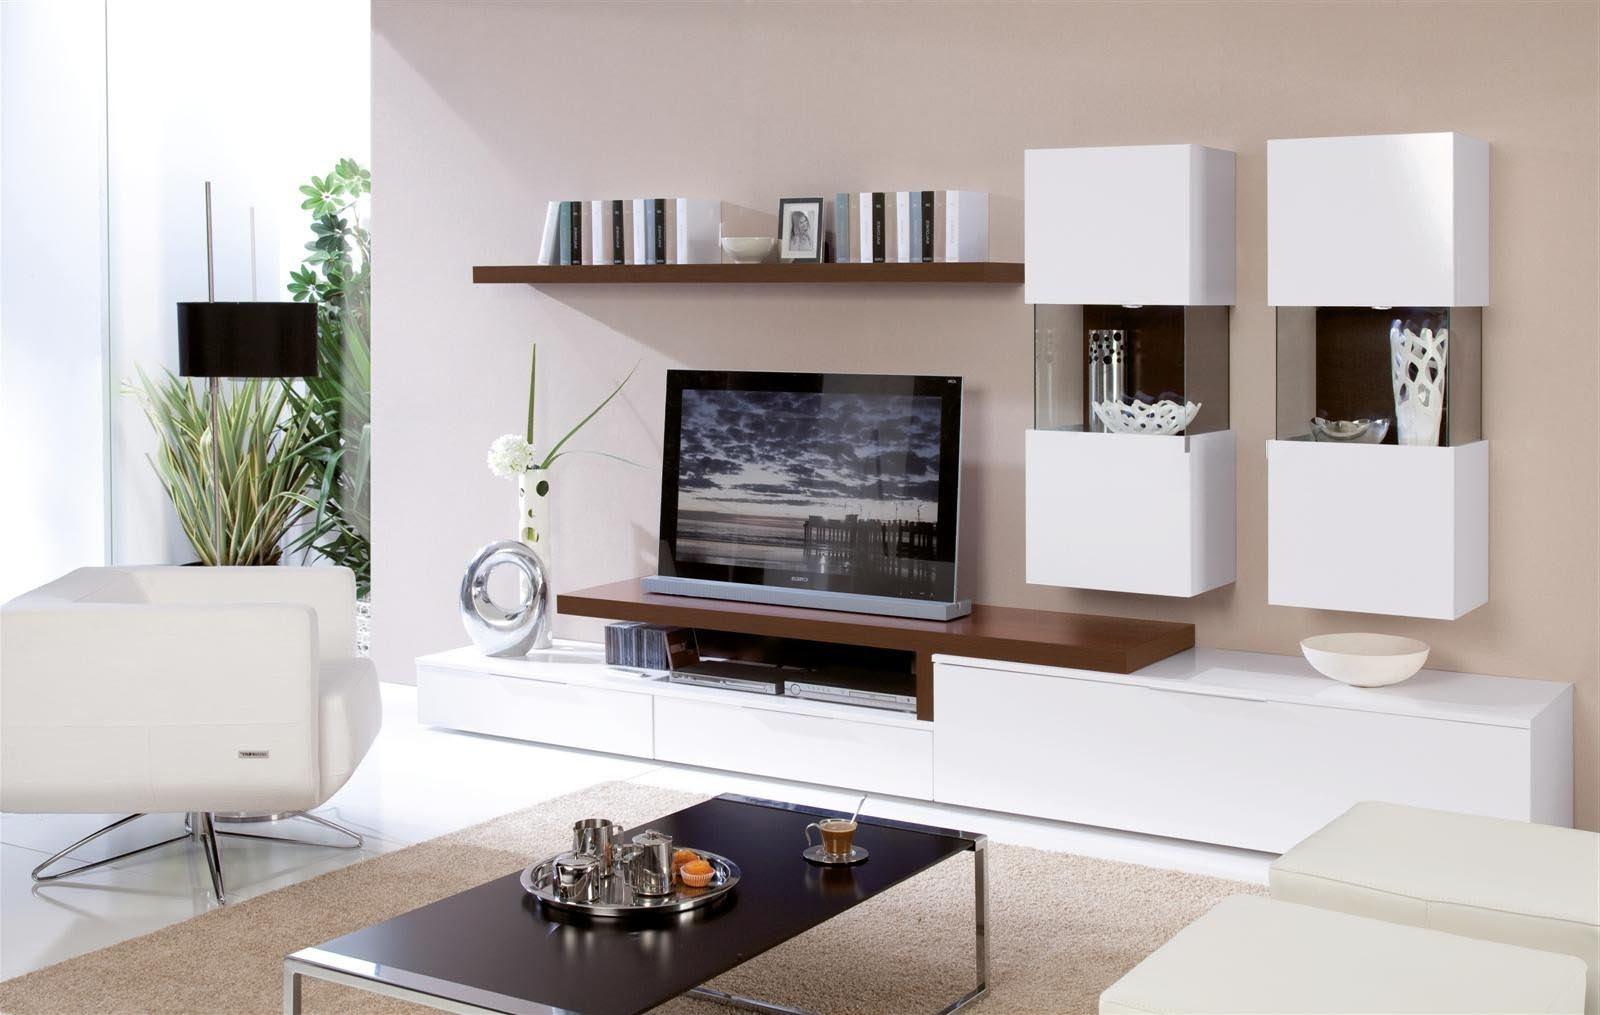 Decorating Wall Mounted And Floating Shelves In Your House Midcityeast